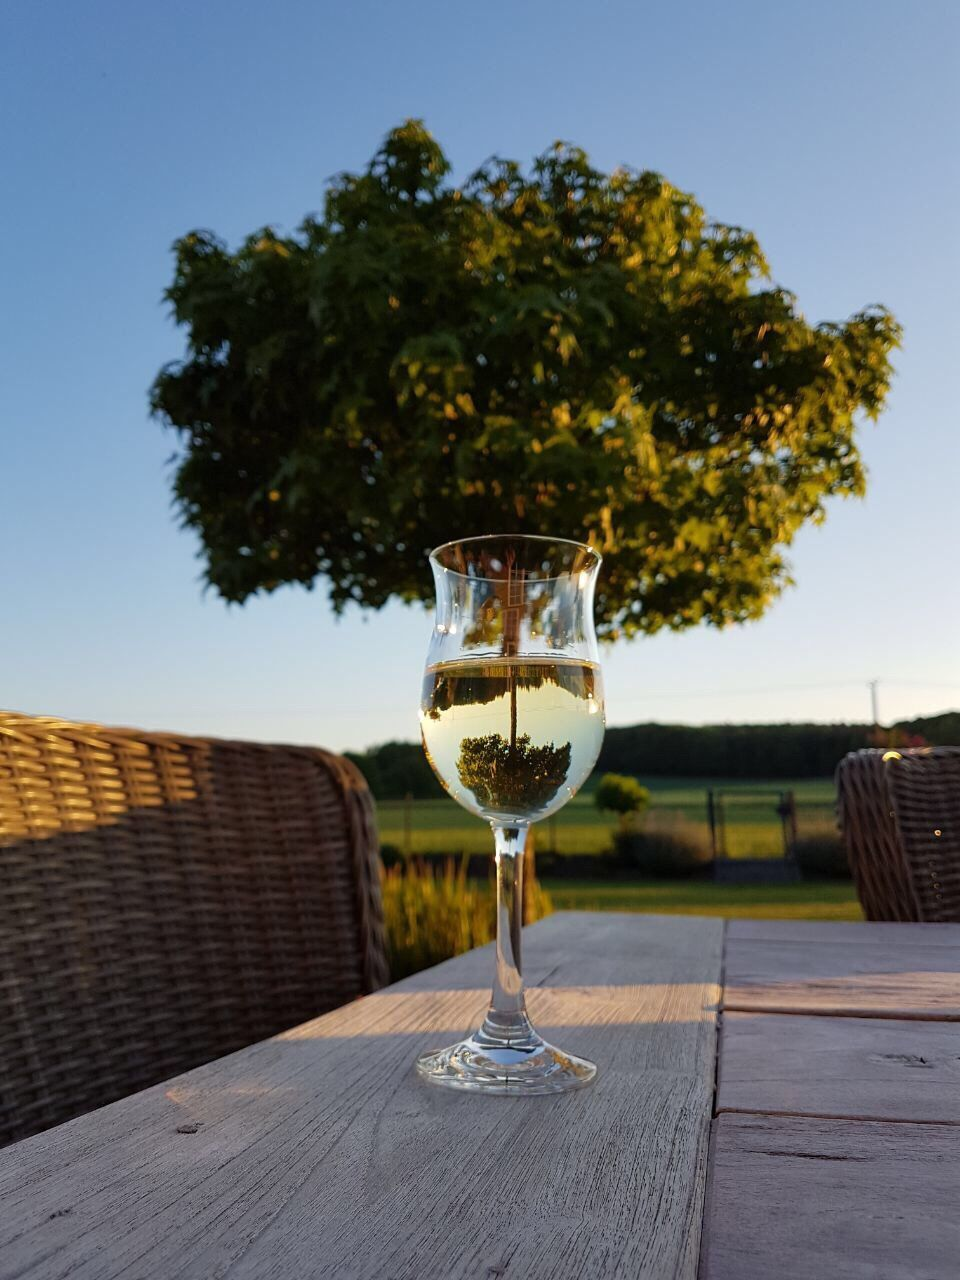 alcohol, table, drink, food and drink, tree, outdoors, refreshment, drinking glass, wine, no people, clear sky, wineglass, day, building exterior, freshness, sky, close-up, architecture, nature